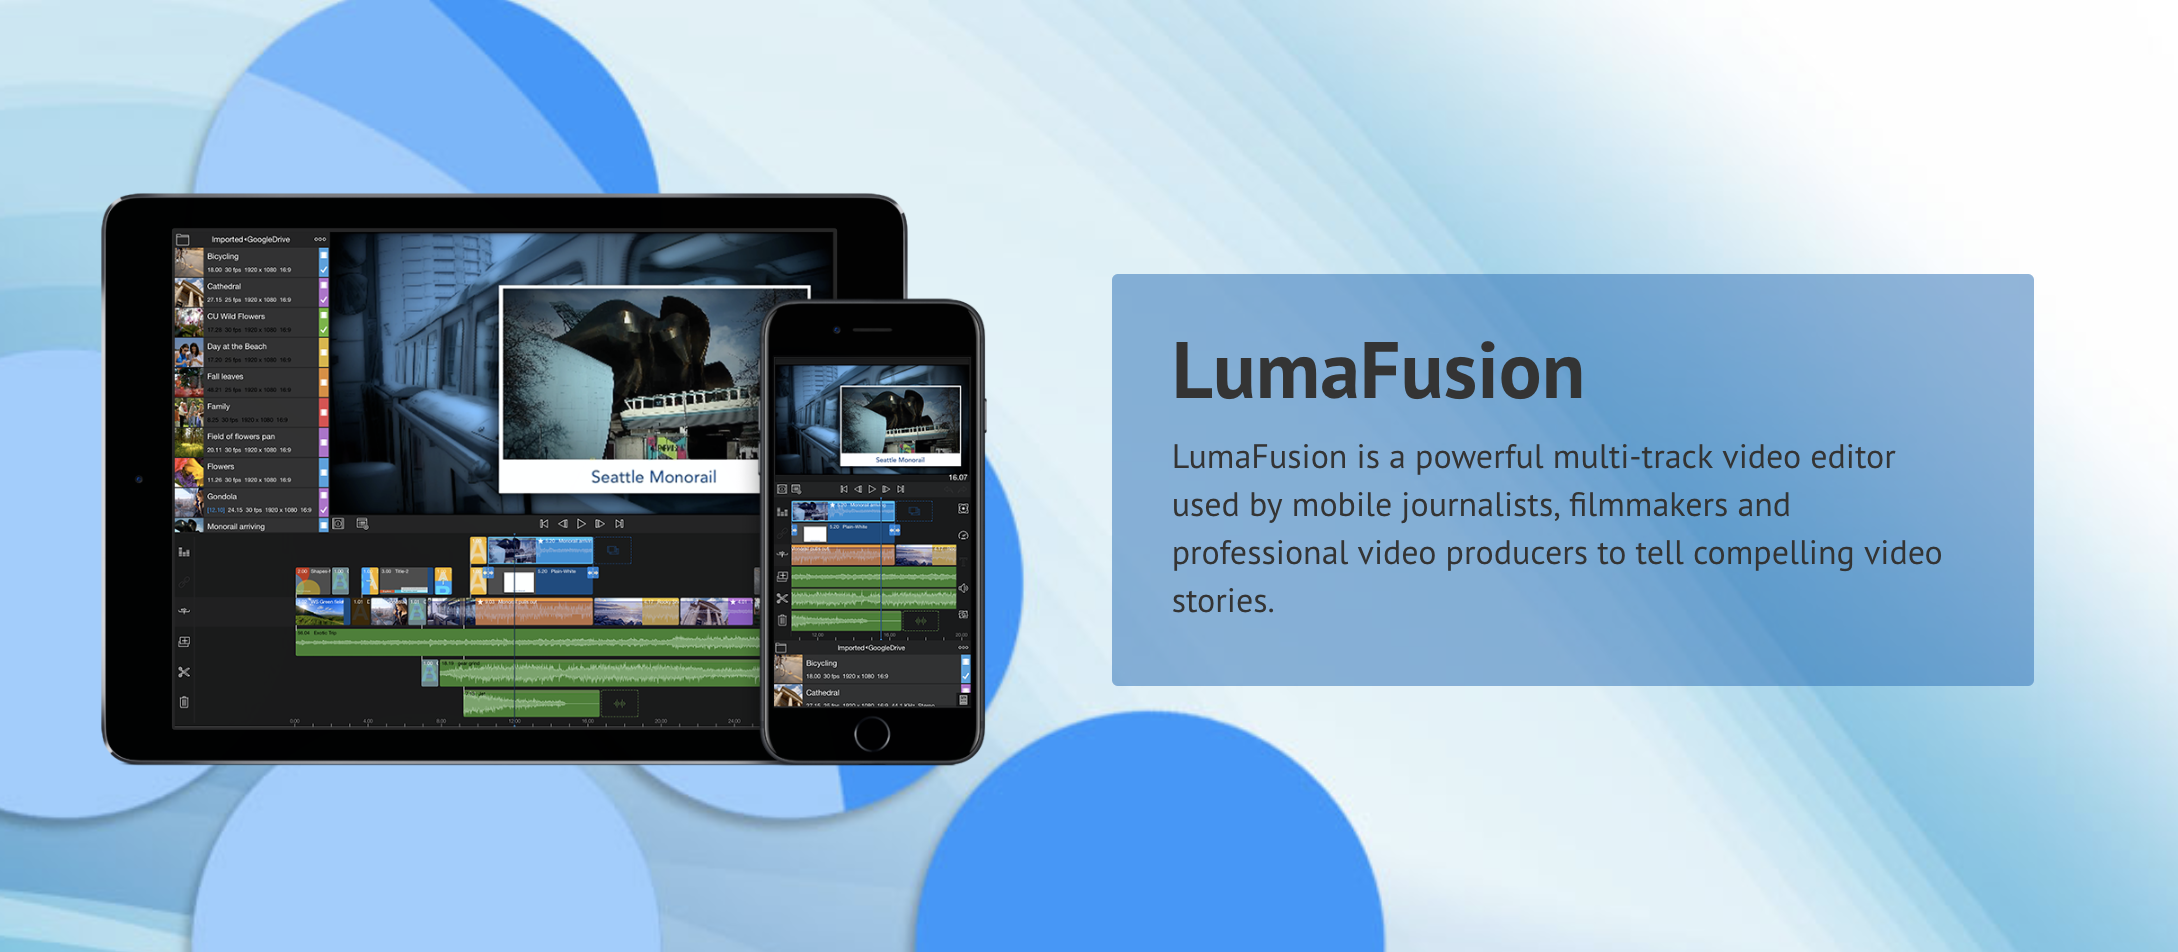 LumaFusion app for mobile video editing